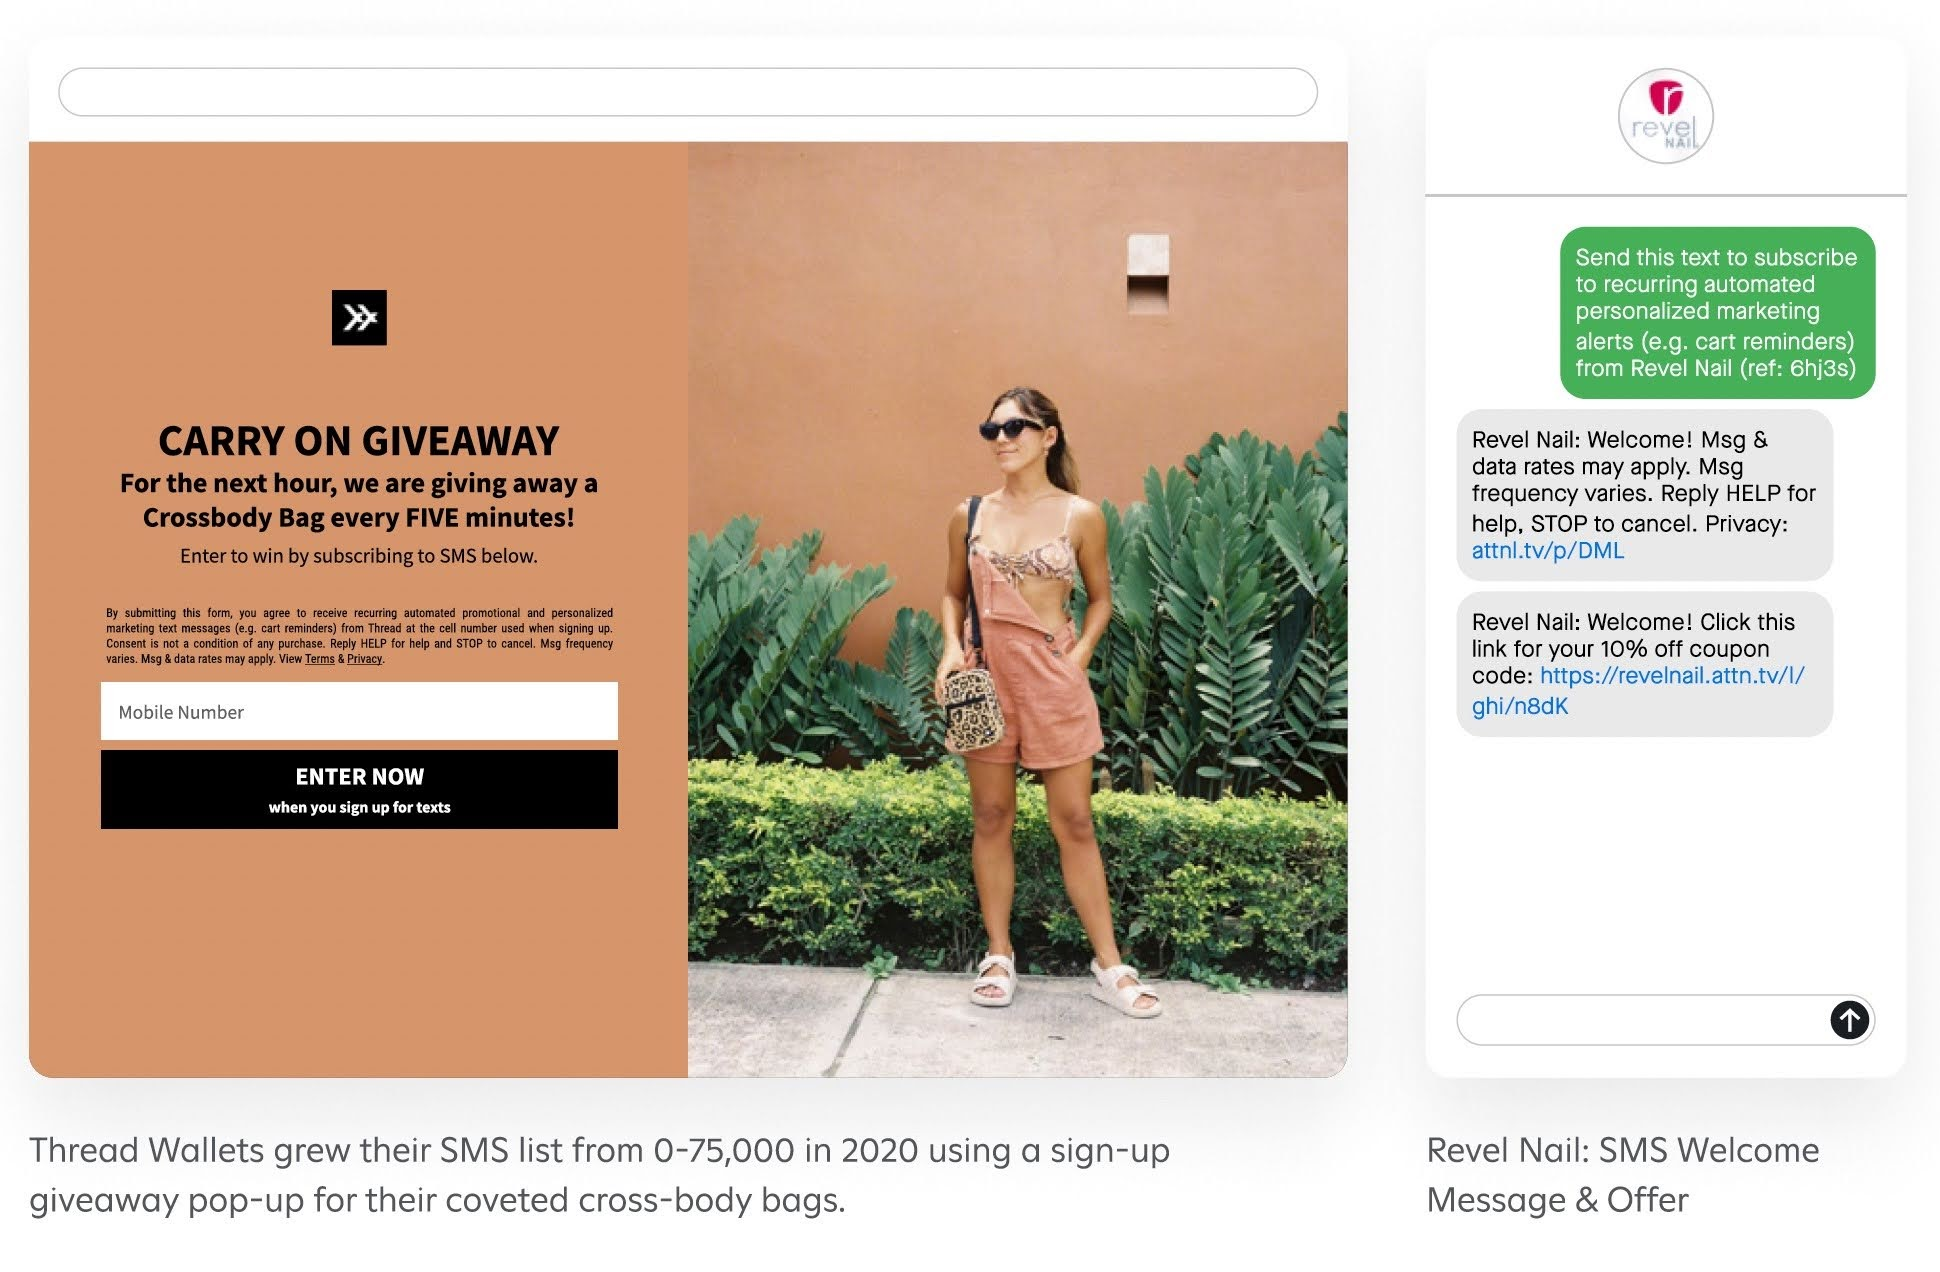 Thread Wallets grew their SMS list from 0-75,000 in 2020 using a sign-up giveaway pop-up for their coveted cross-body bags.